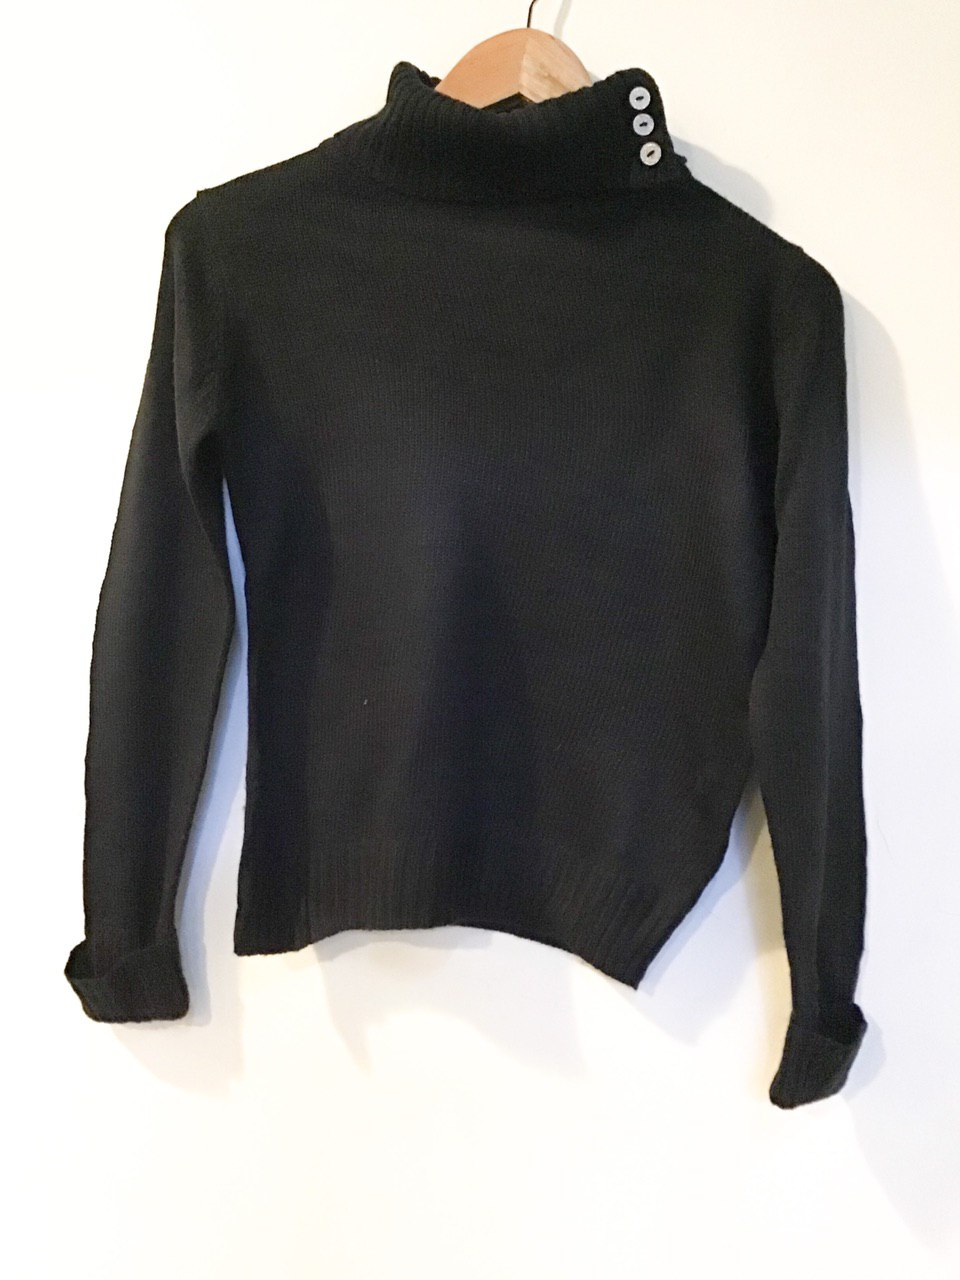 BJ1483 BLACK KNITWEAR